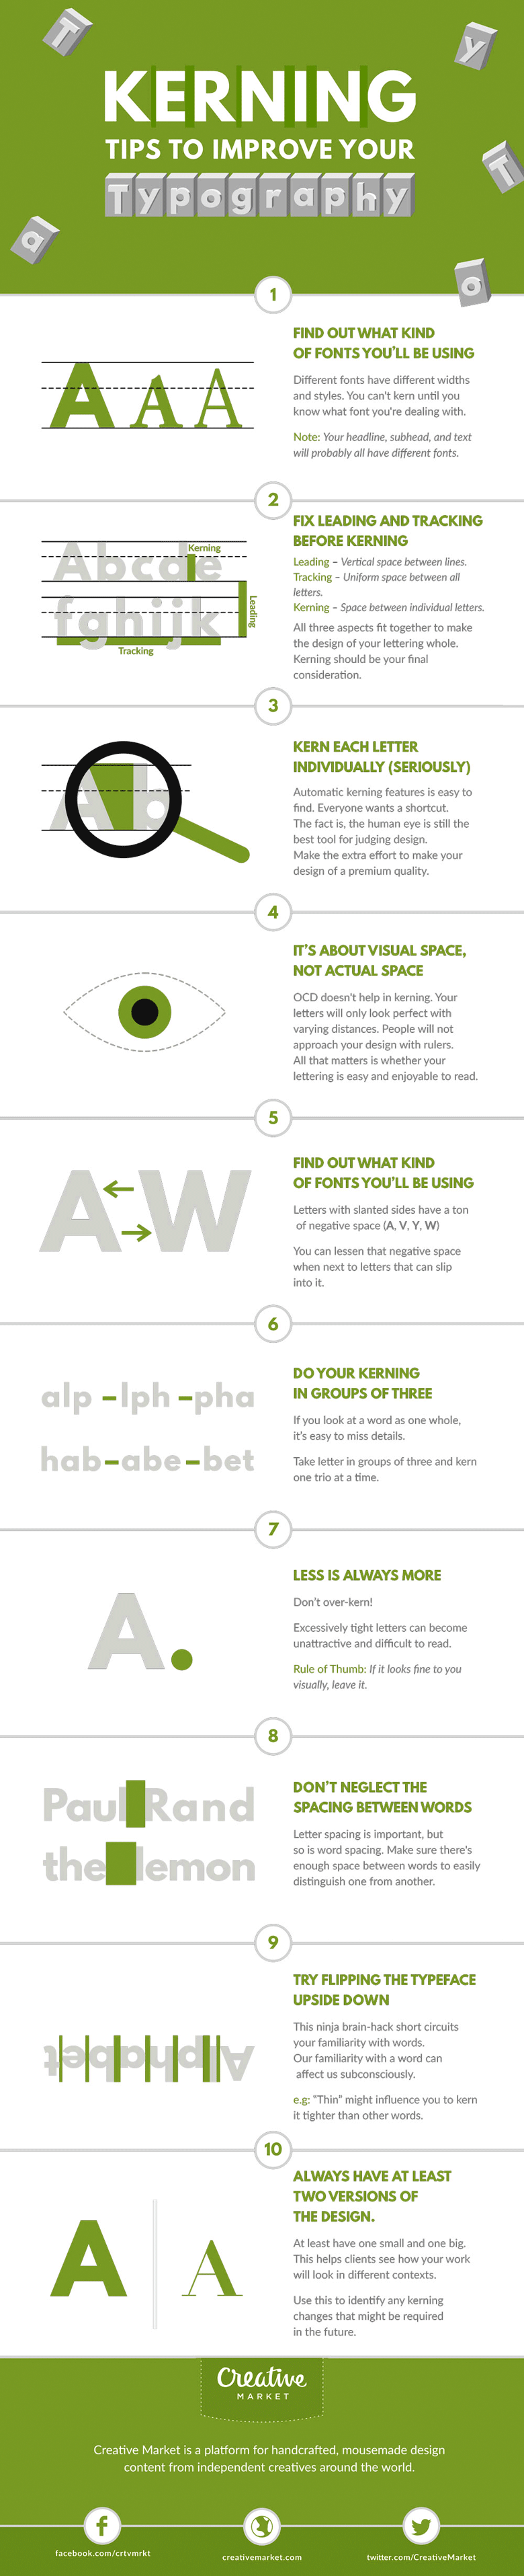 kerning-tips-to-improve-typography-infographic